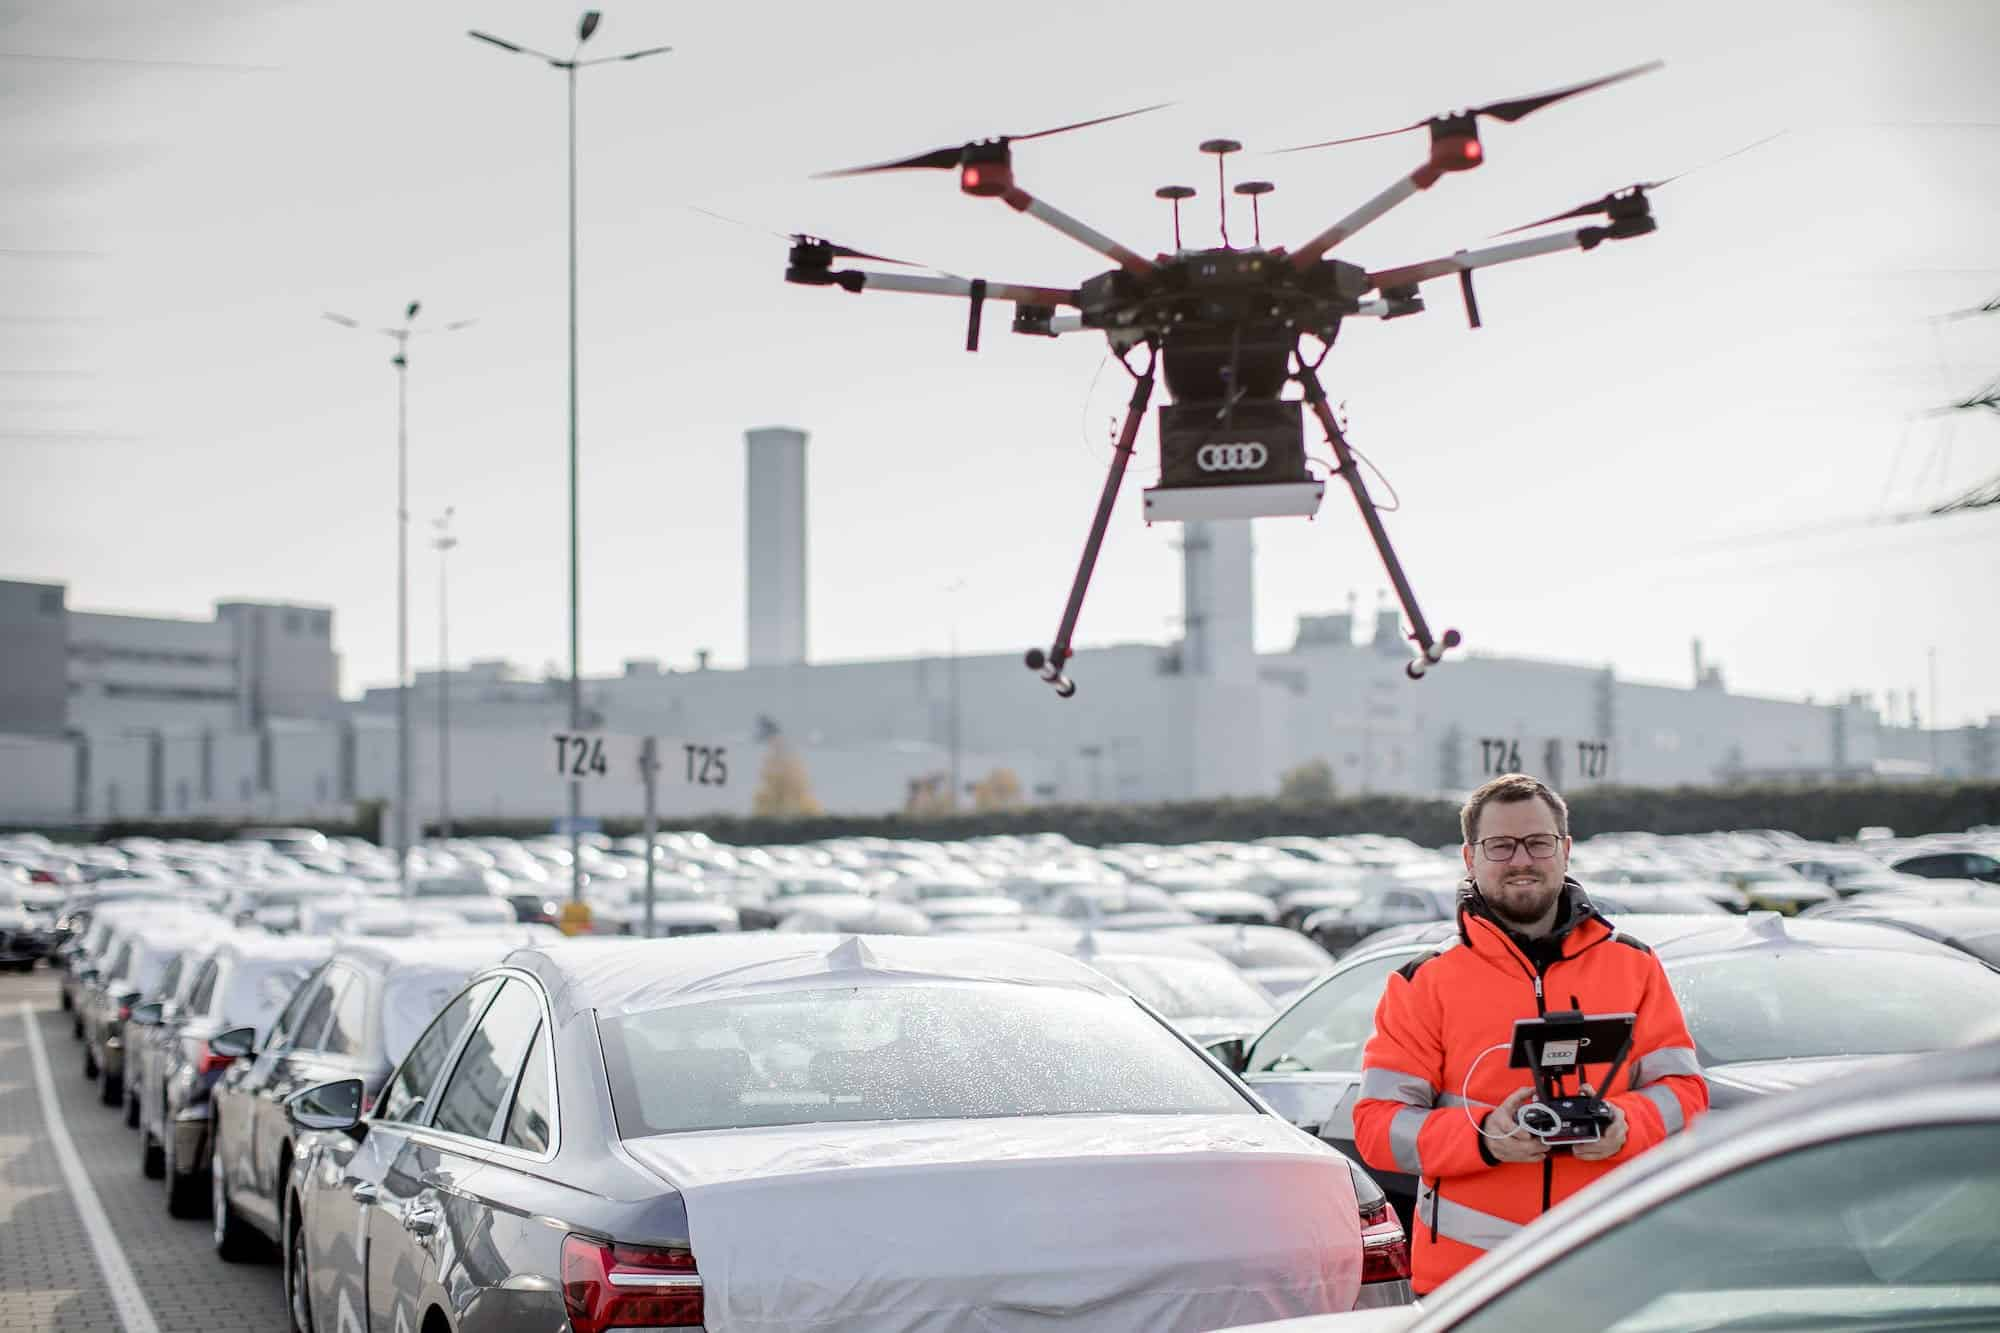 Audi uses drones to increase efficiency at Neckarsulm facility